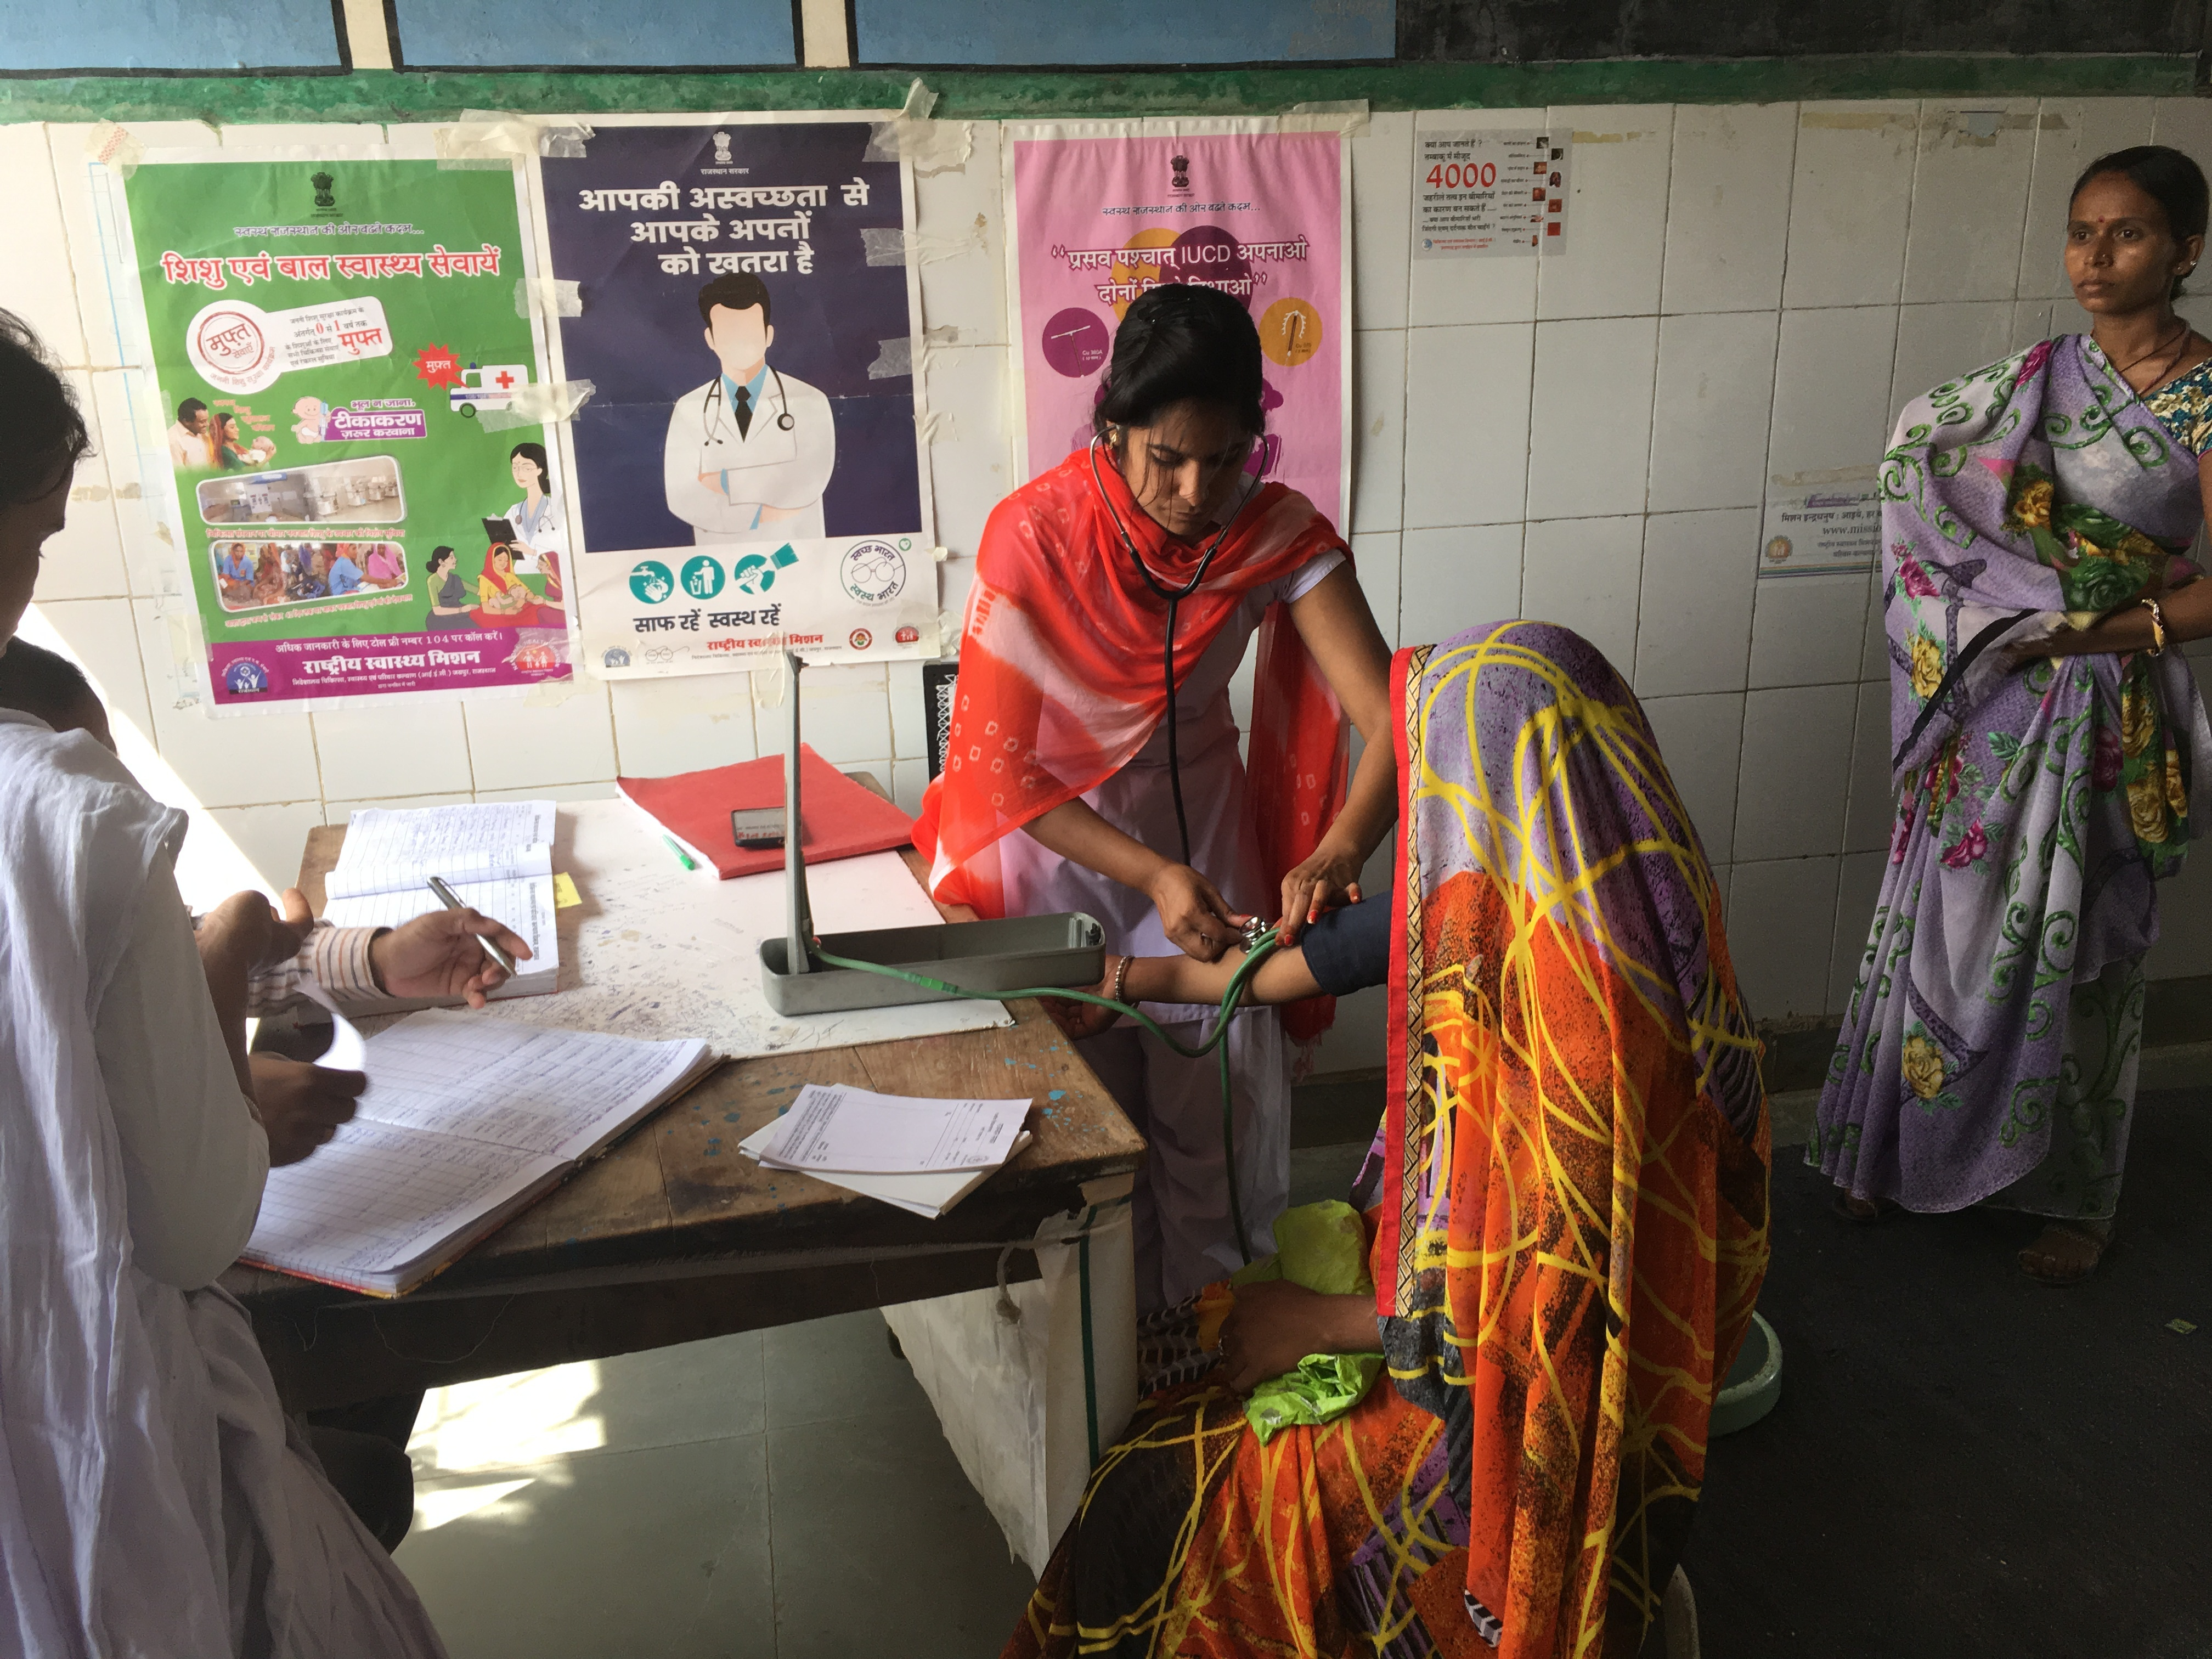 For the government's ambitious National Health Protection Scheme to work well, primary health centres in India must be strengthened. (Credit: Menaka Rao)